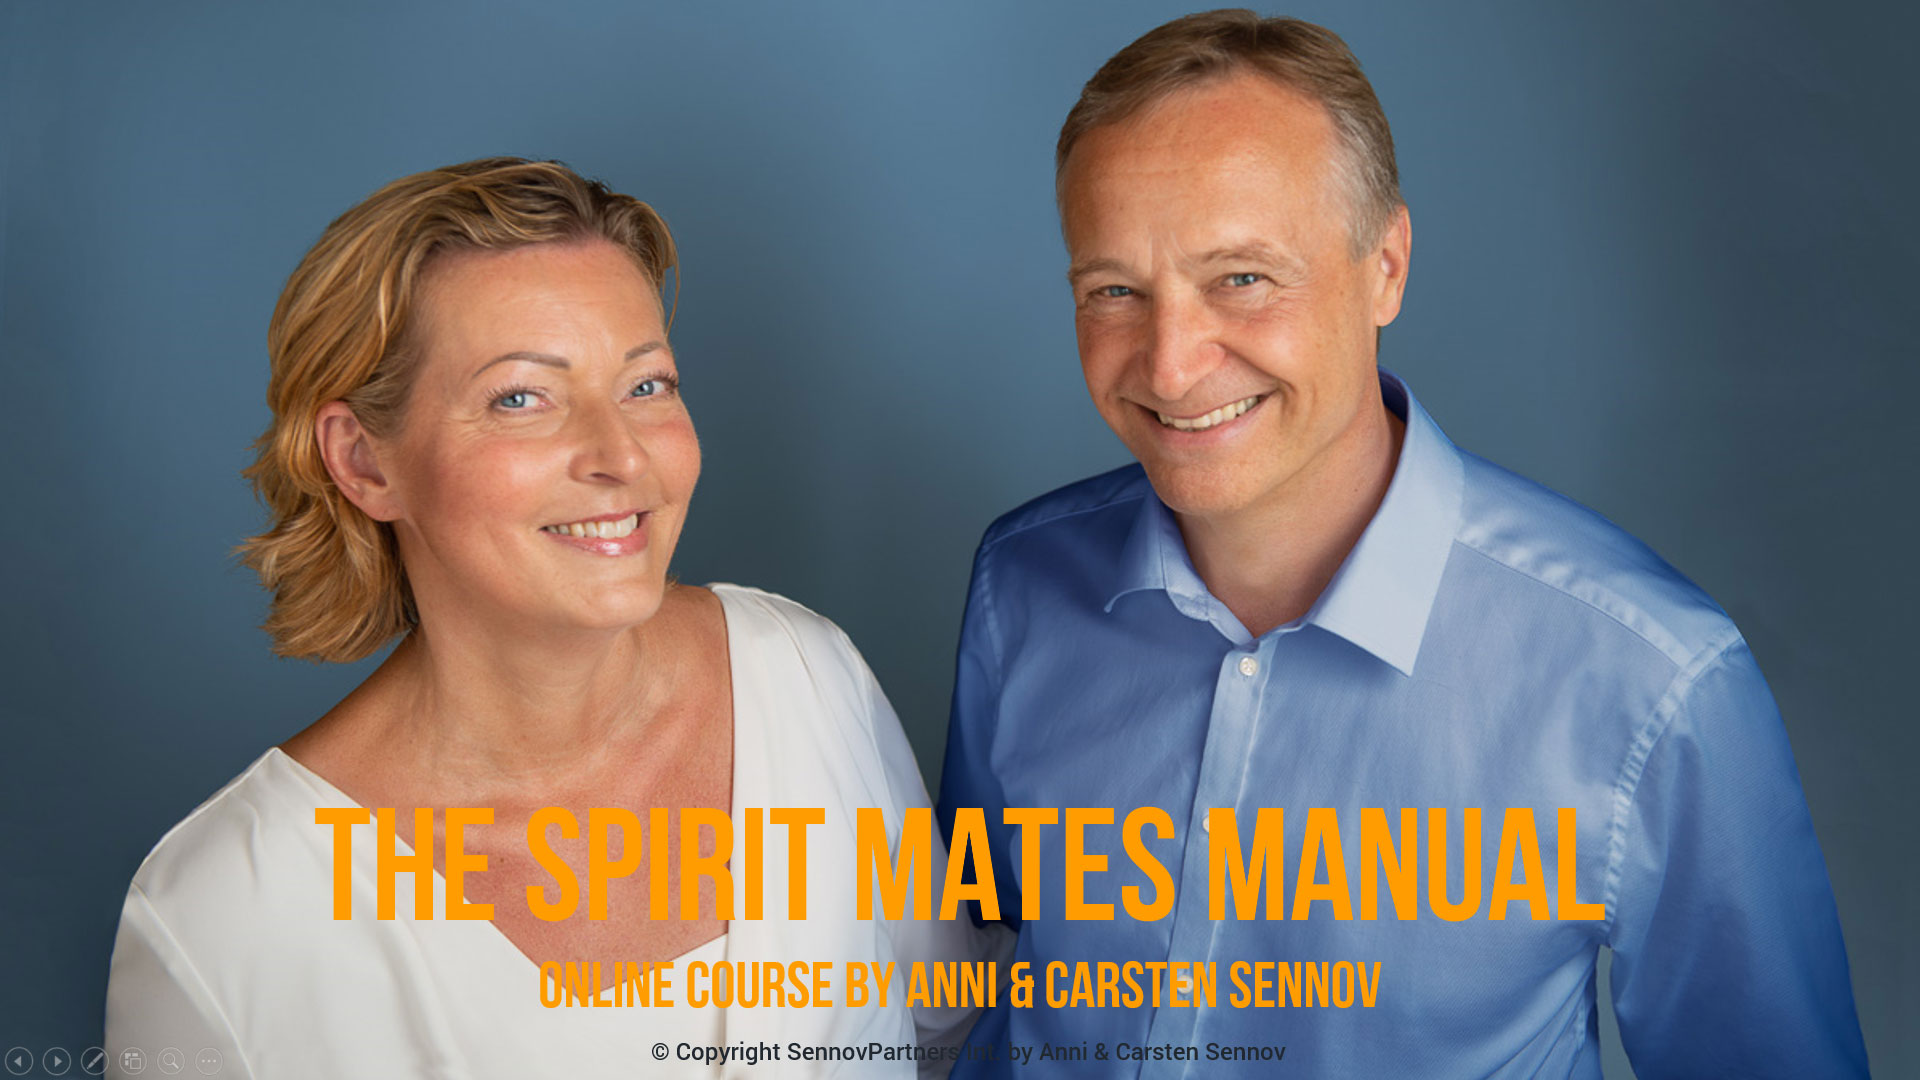 The Spirit Mates Manual